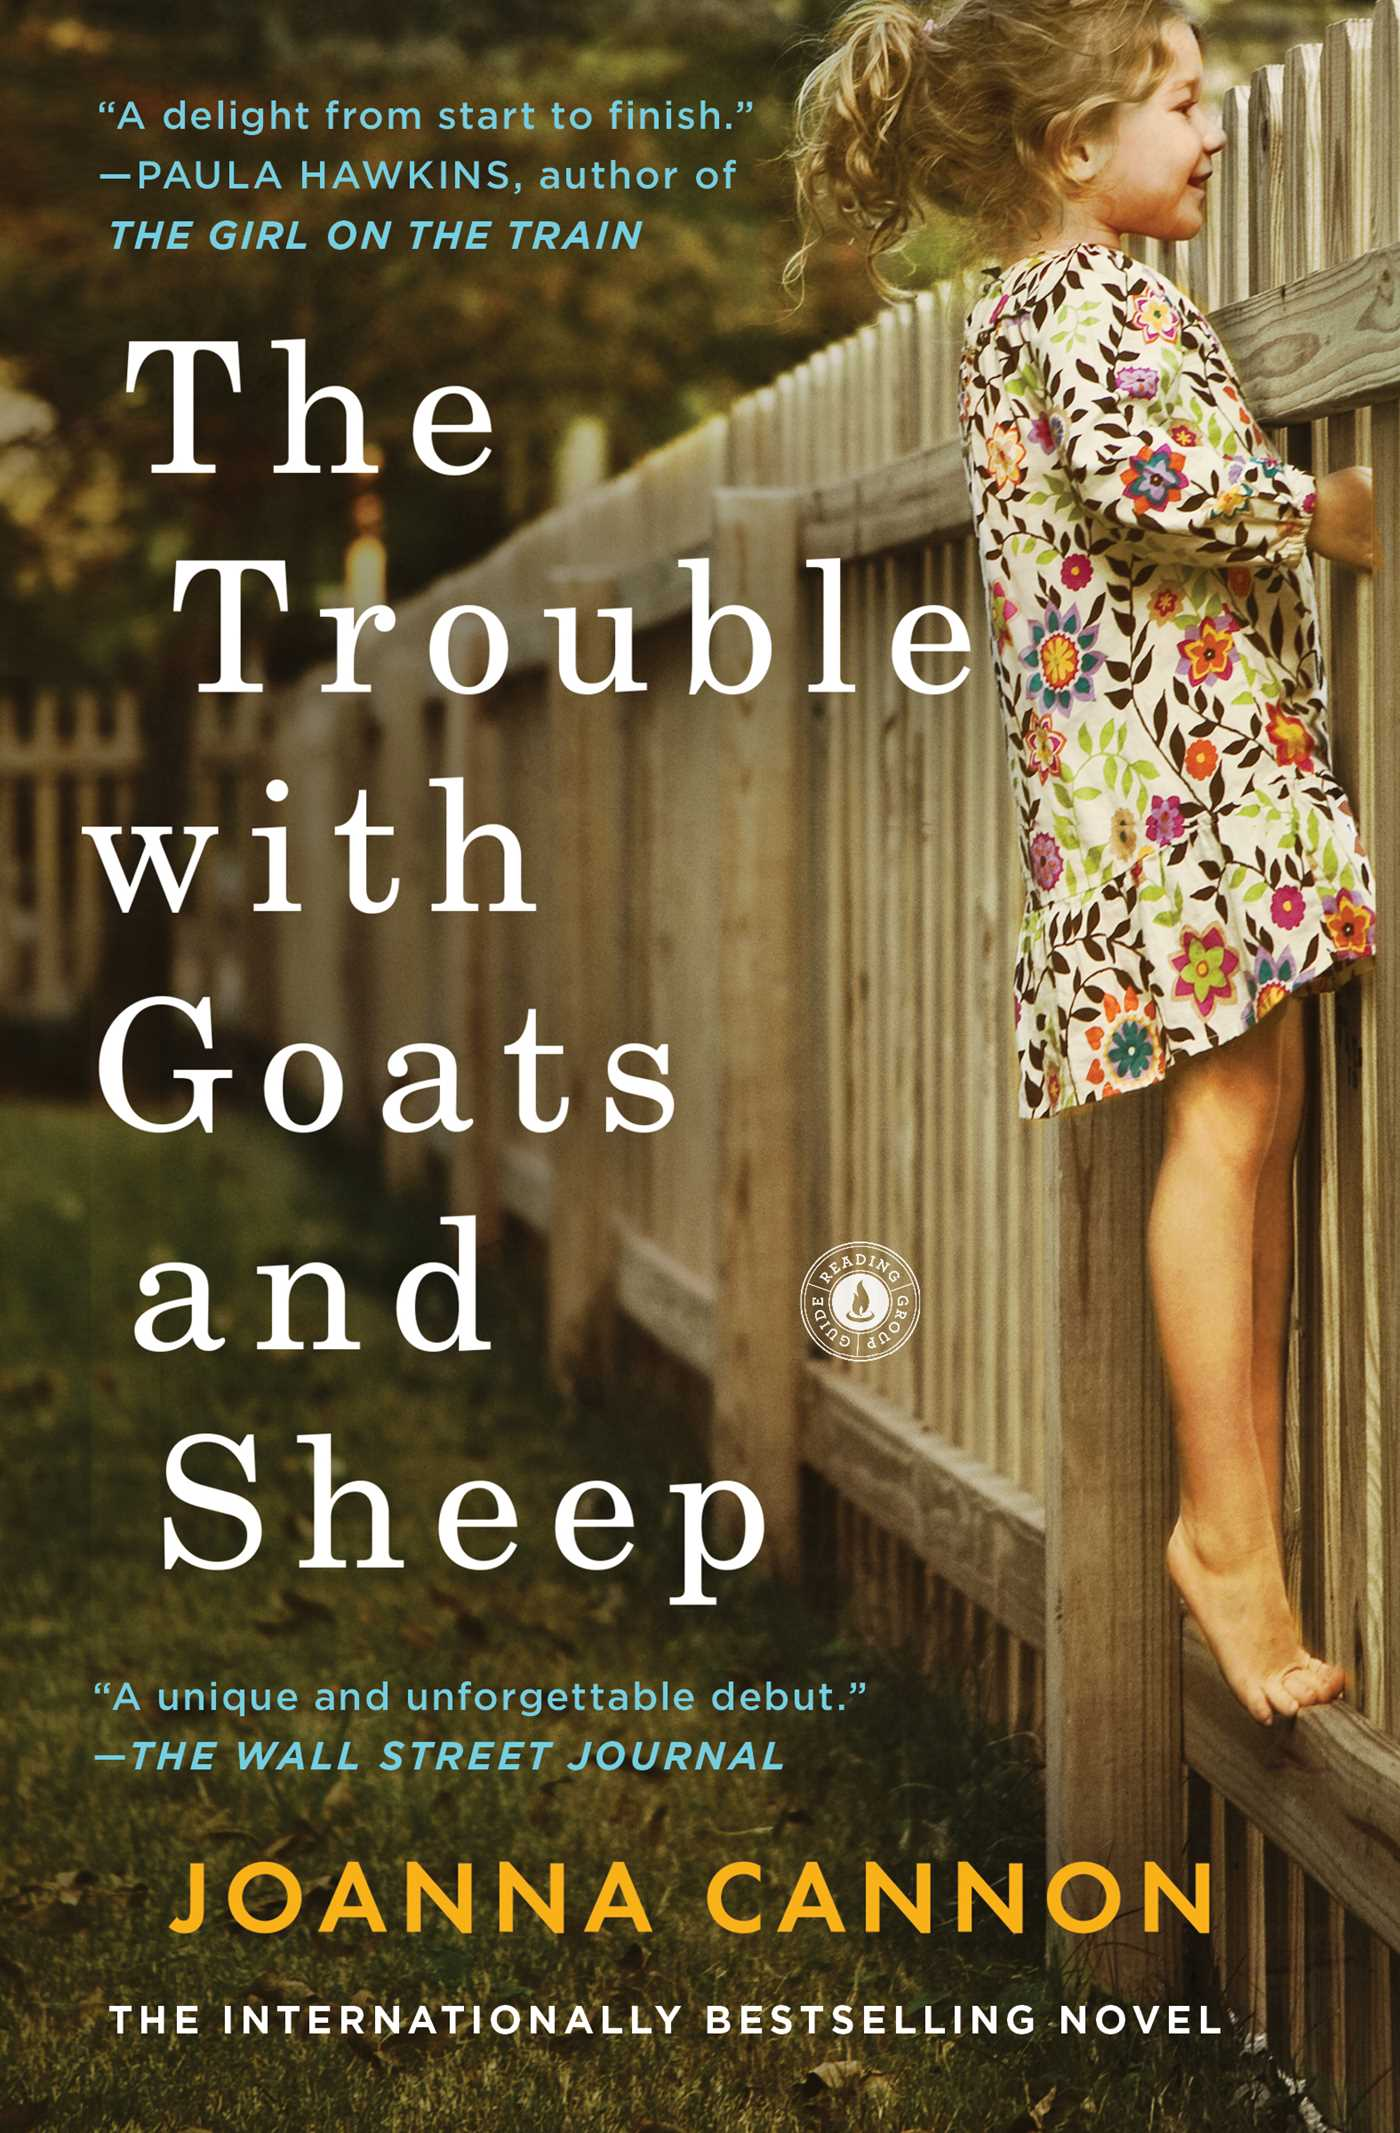 Joanna Cannon – The Trouble With Goats And Sheep